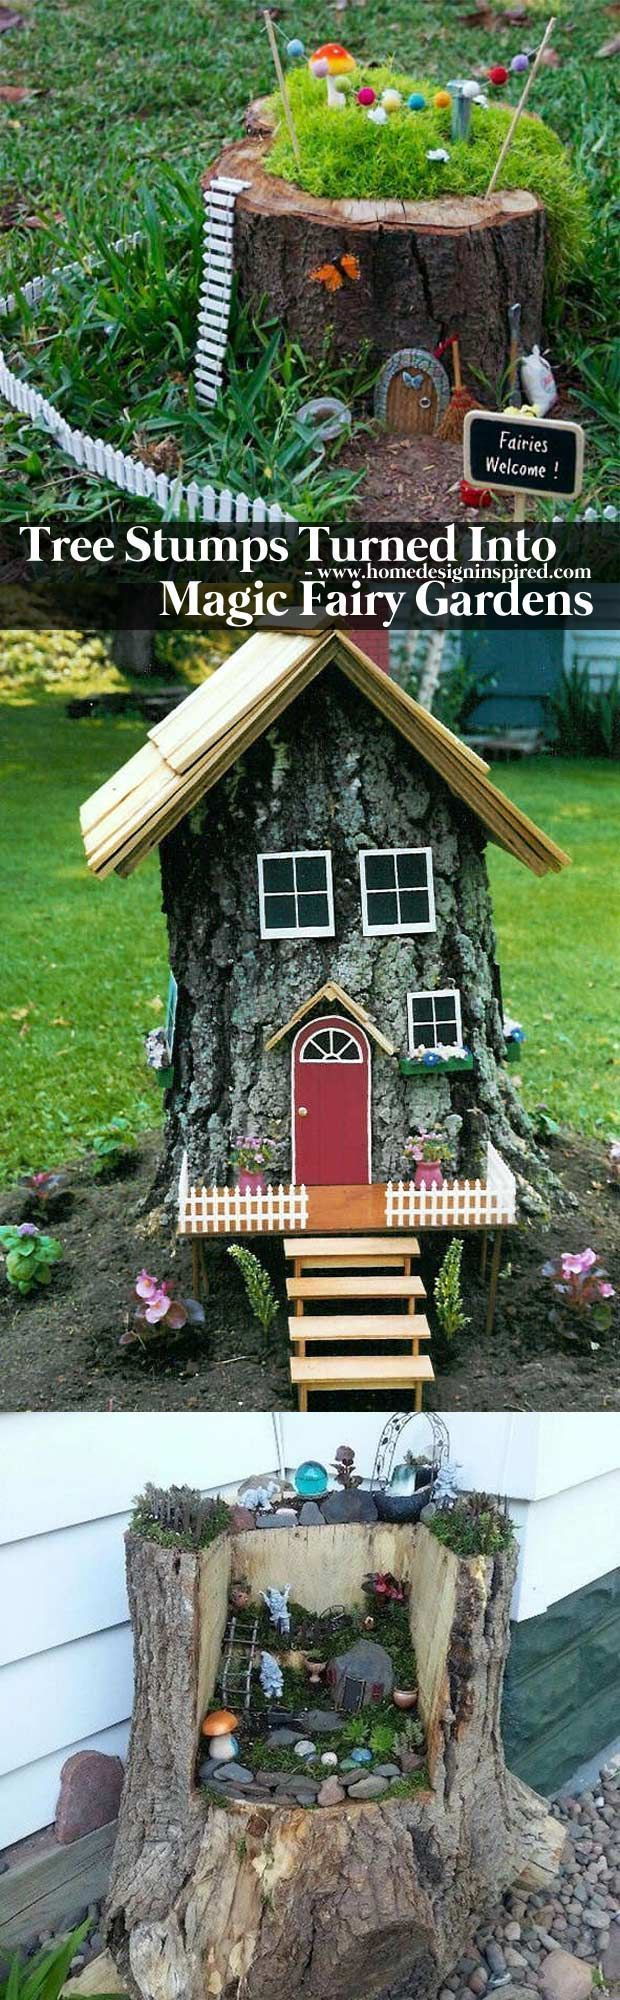 Tree stumps turned into magic fairy houses - 17 Stunning Fairy Gardens Created by Recycled Things #miniaturefairygardens #gardenplans